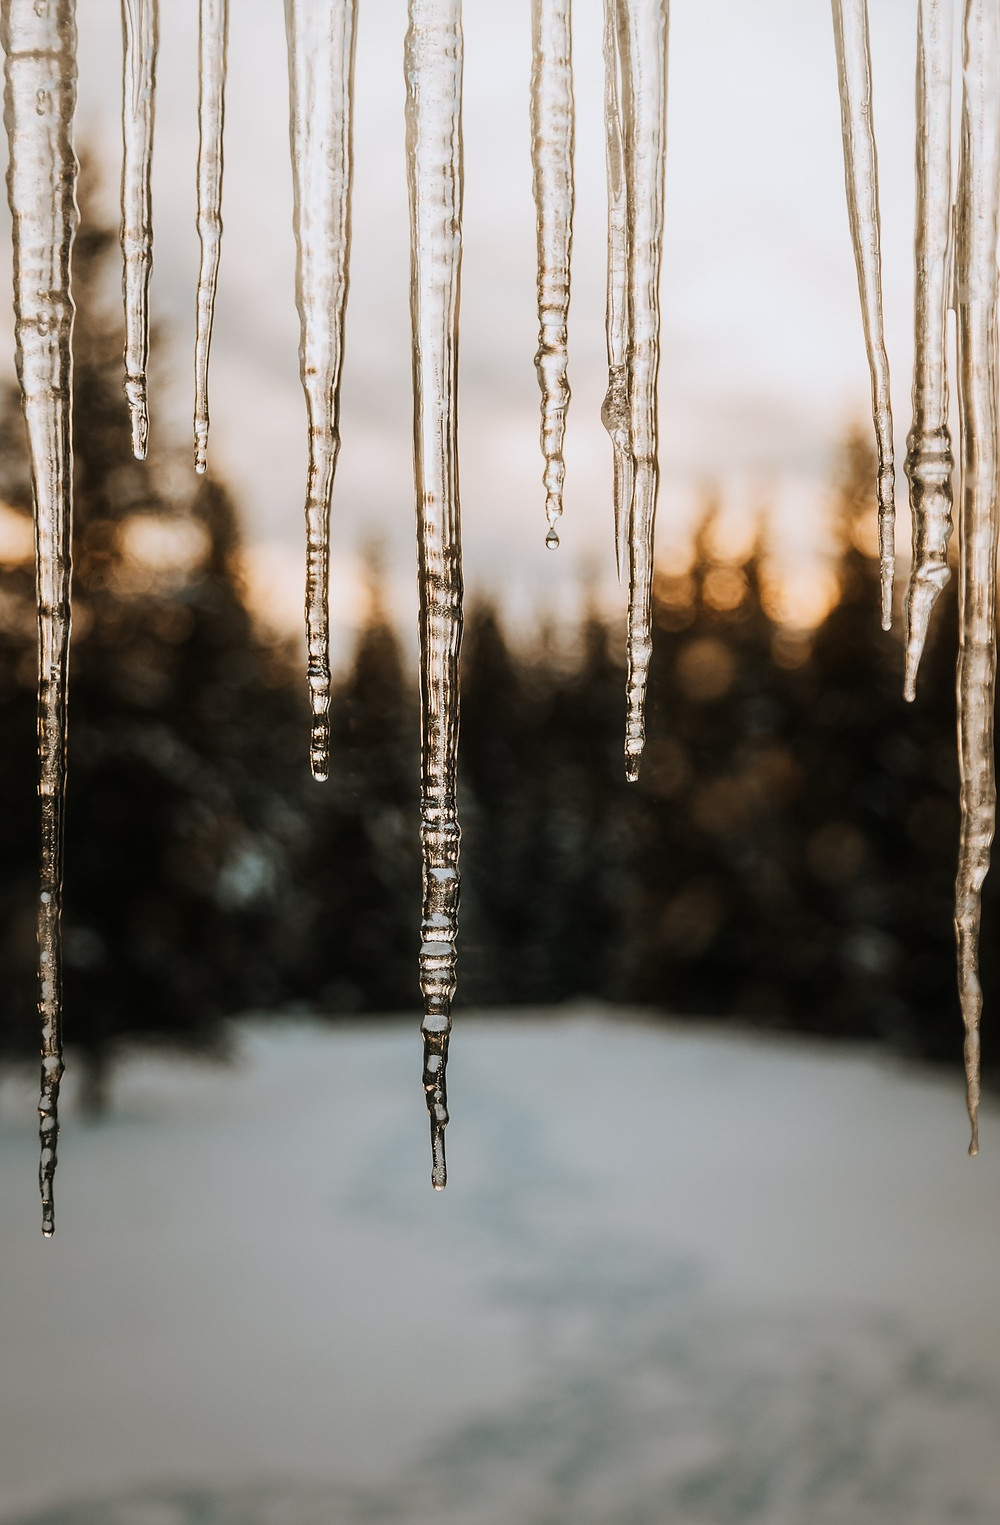 Icicles details by Anna Hurley